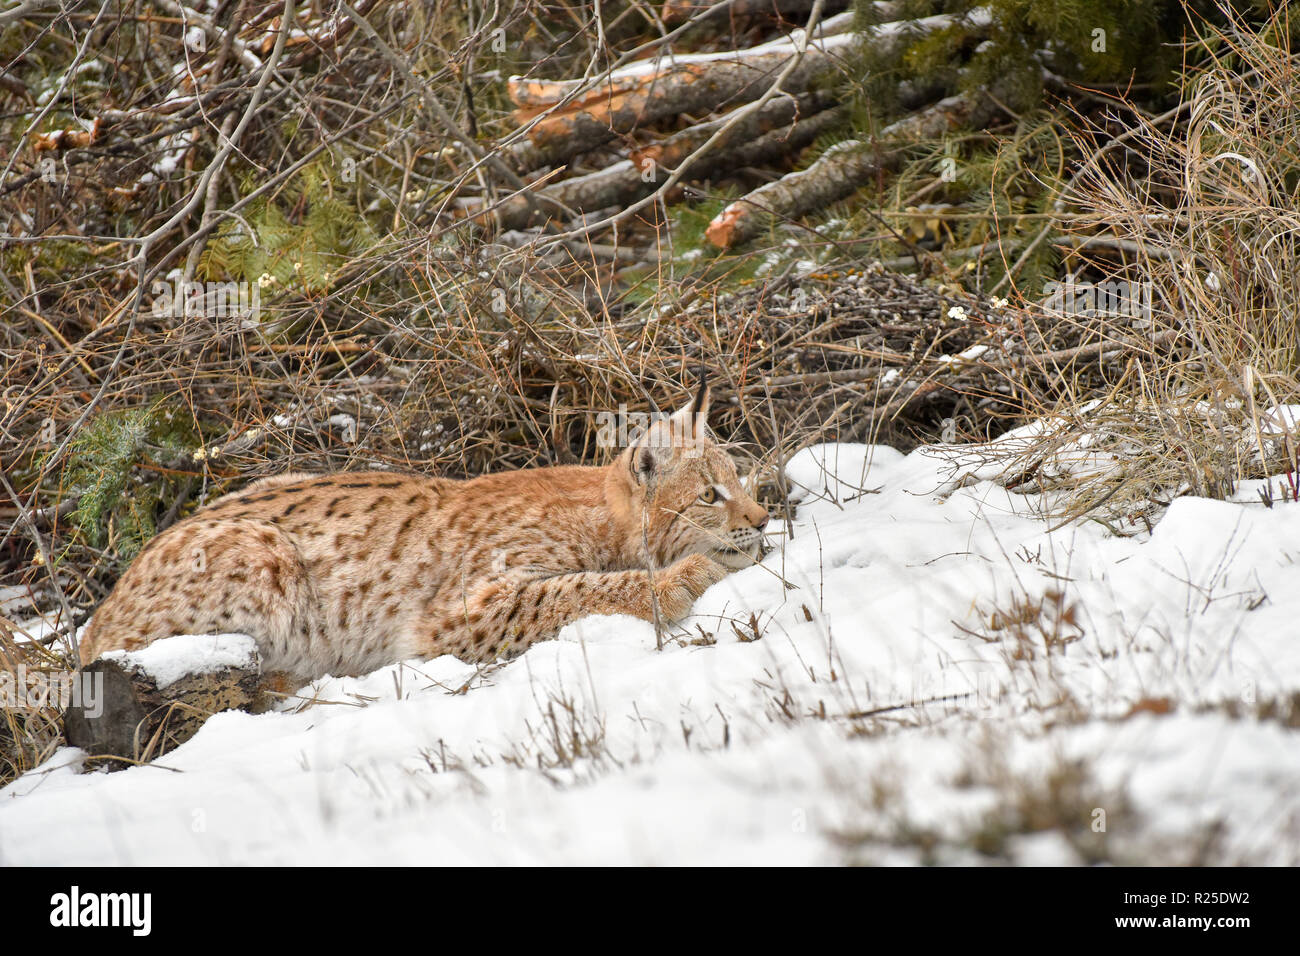 Siberian Lynx Crouched in the Snow and Ready to Pounce - Stock Image